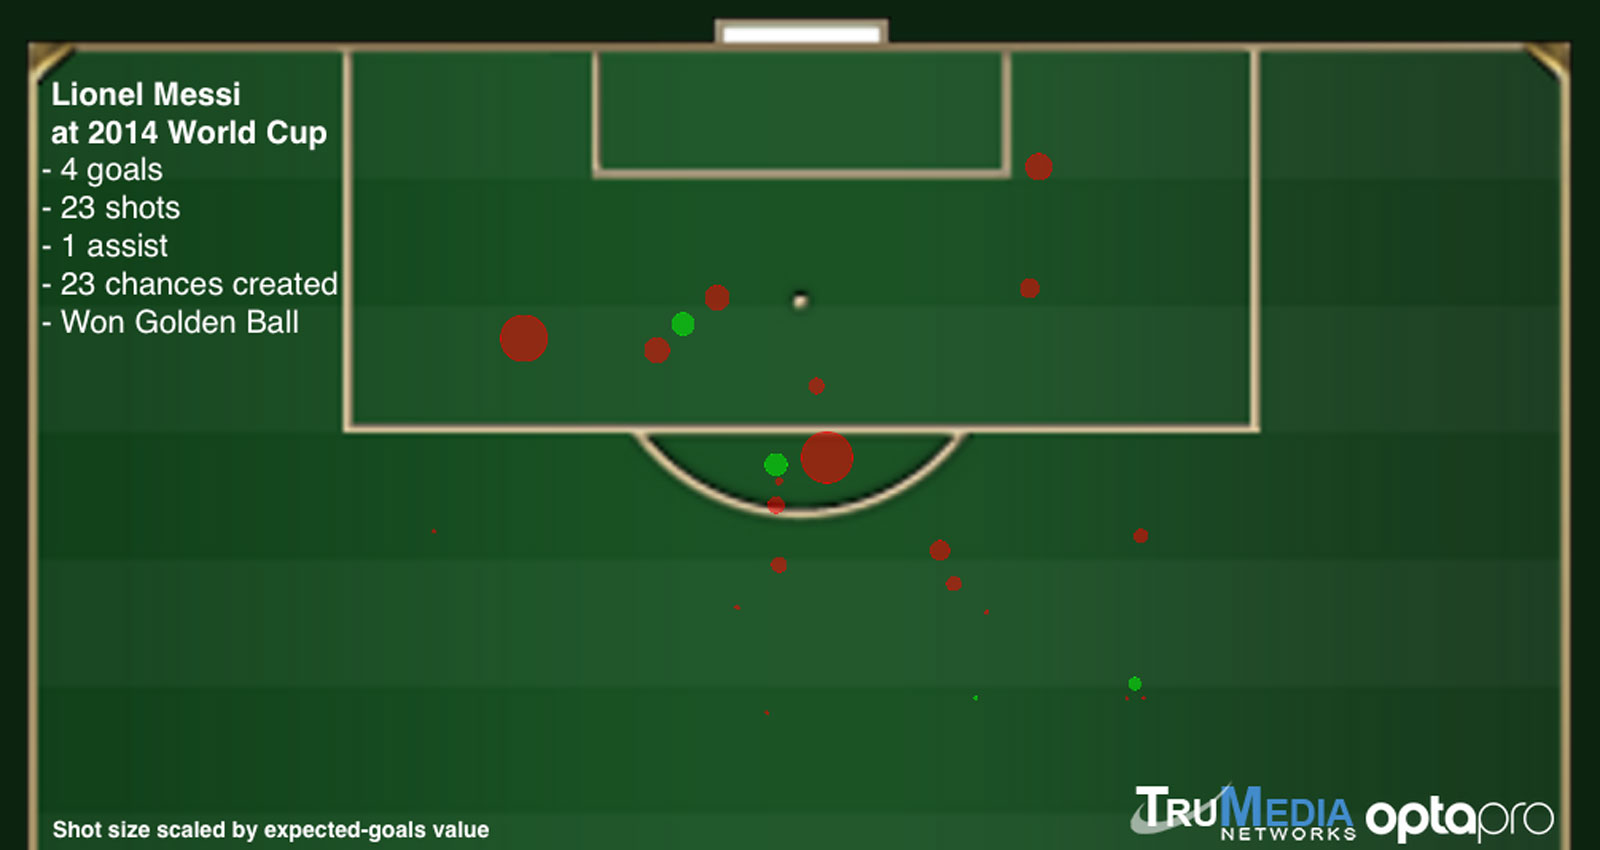 Lionel Messi's shot chart at the 2014 World Cup for Argentina